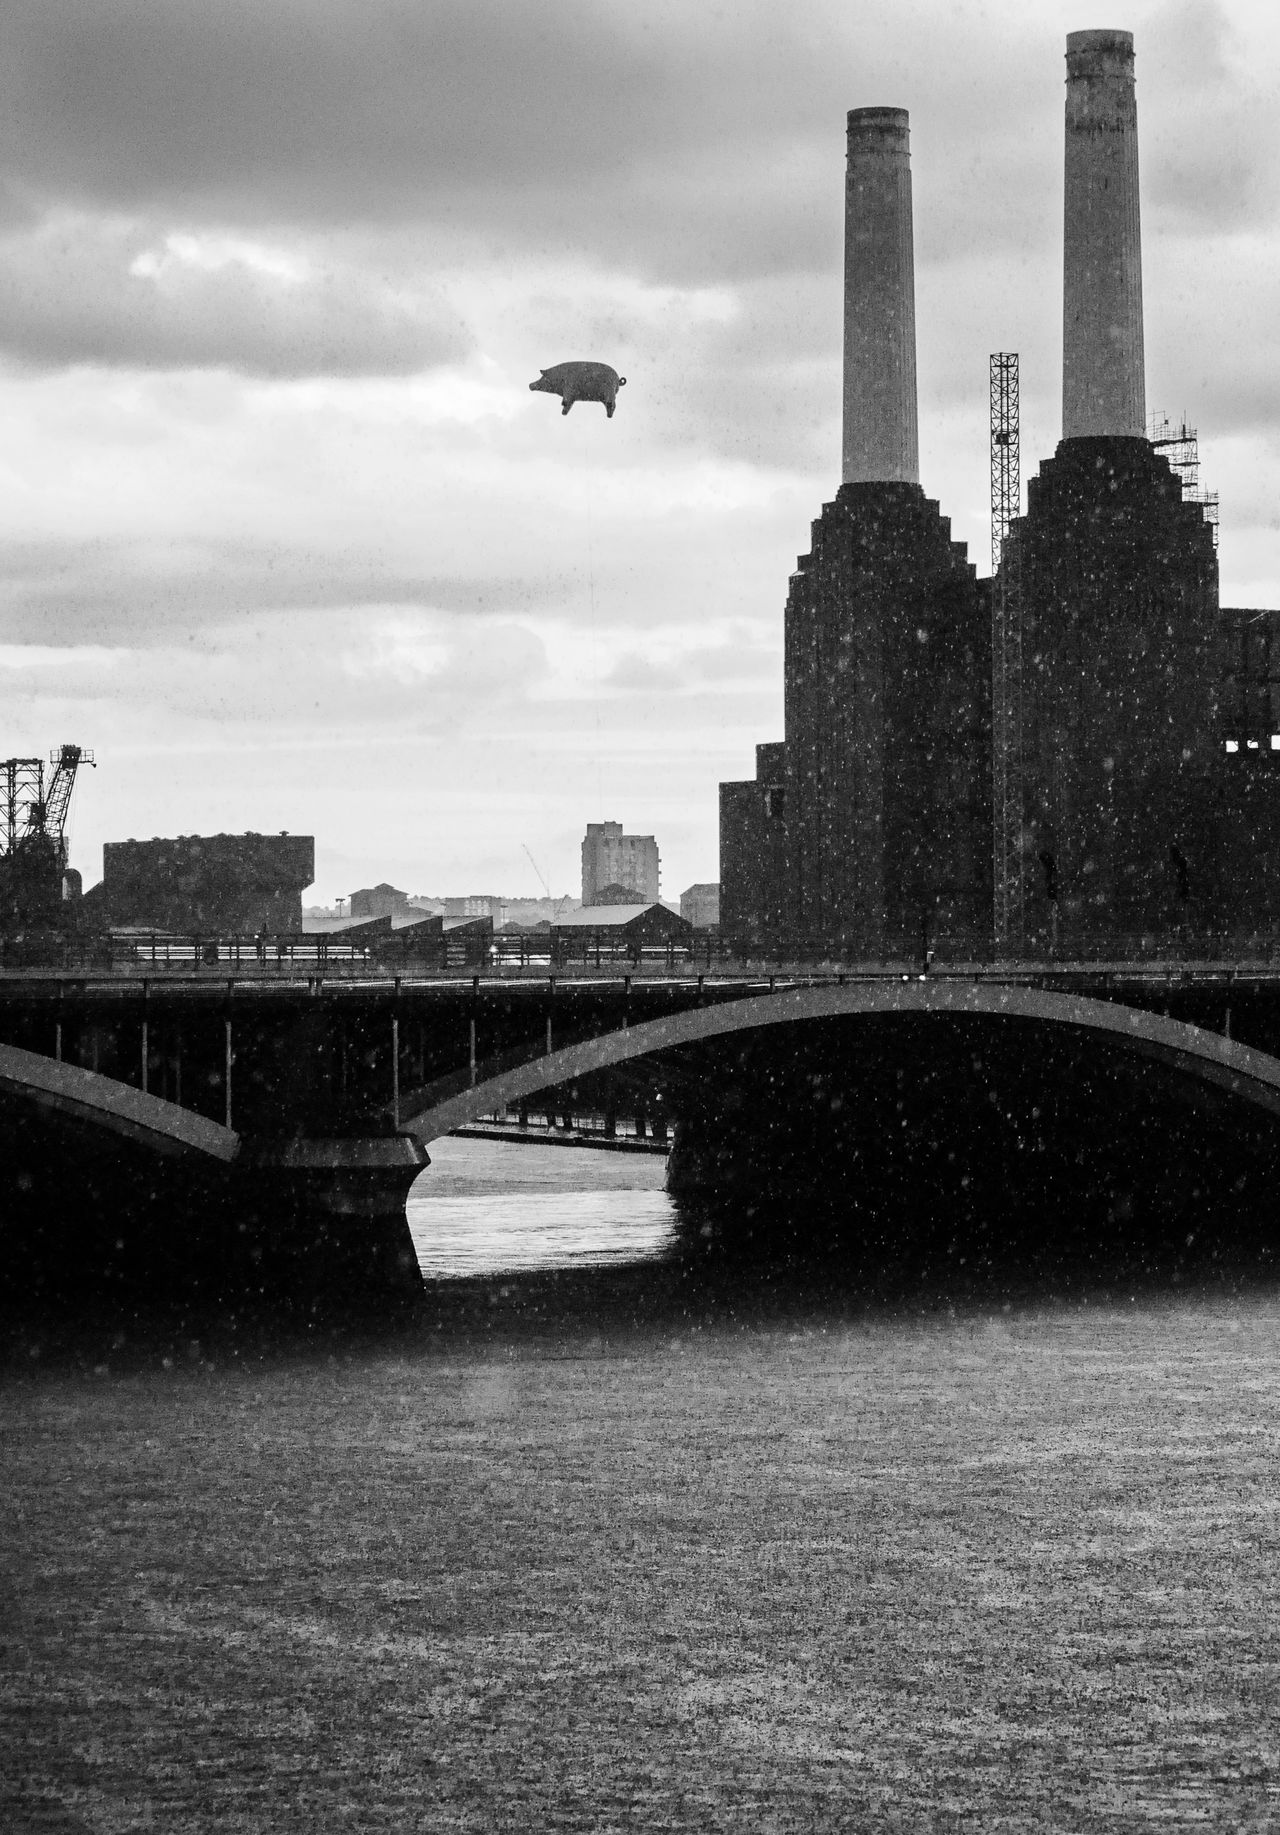 Anniversary Battersea Battersea Power Station Blackandwhite Photography Bridge Flying Pig Music Pig Pink Floyd Rain Thames